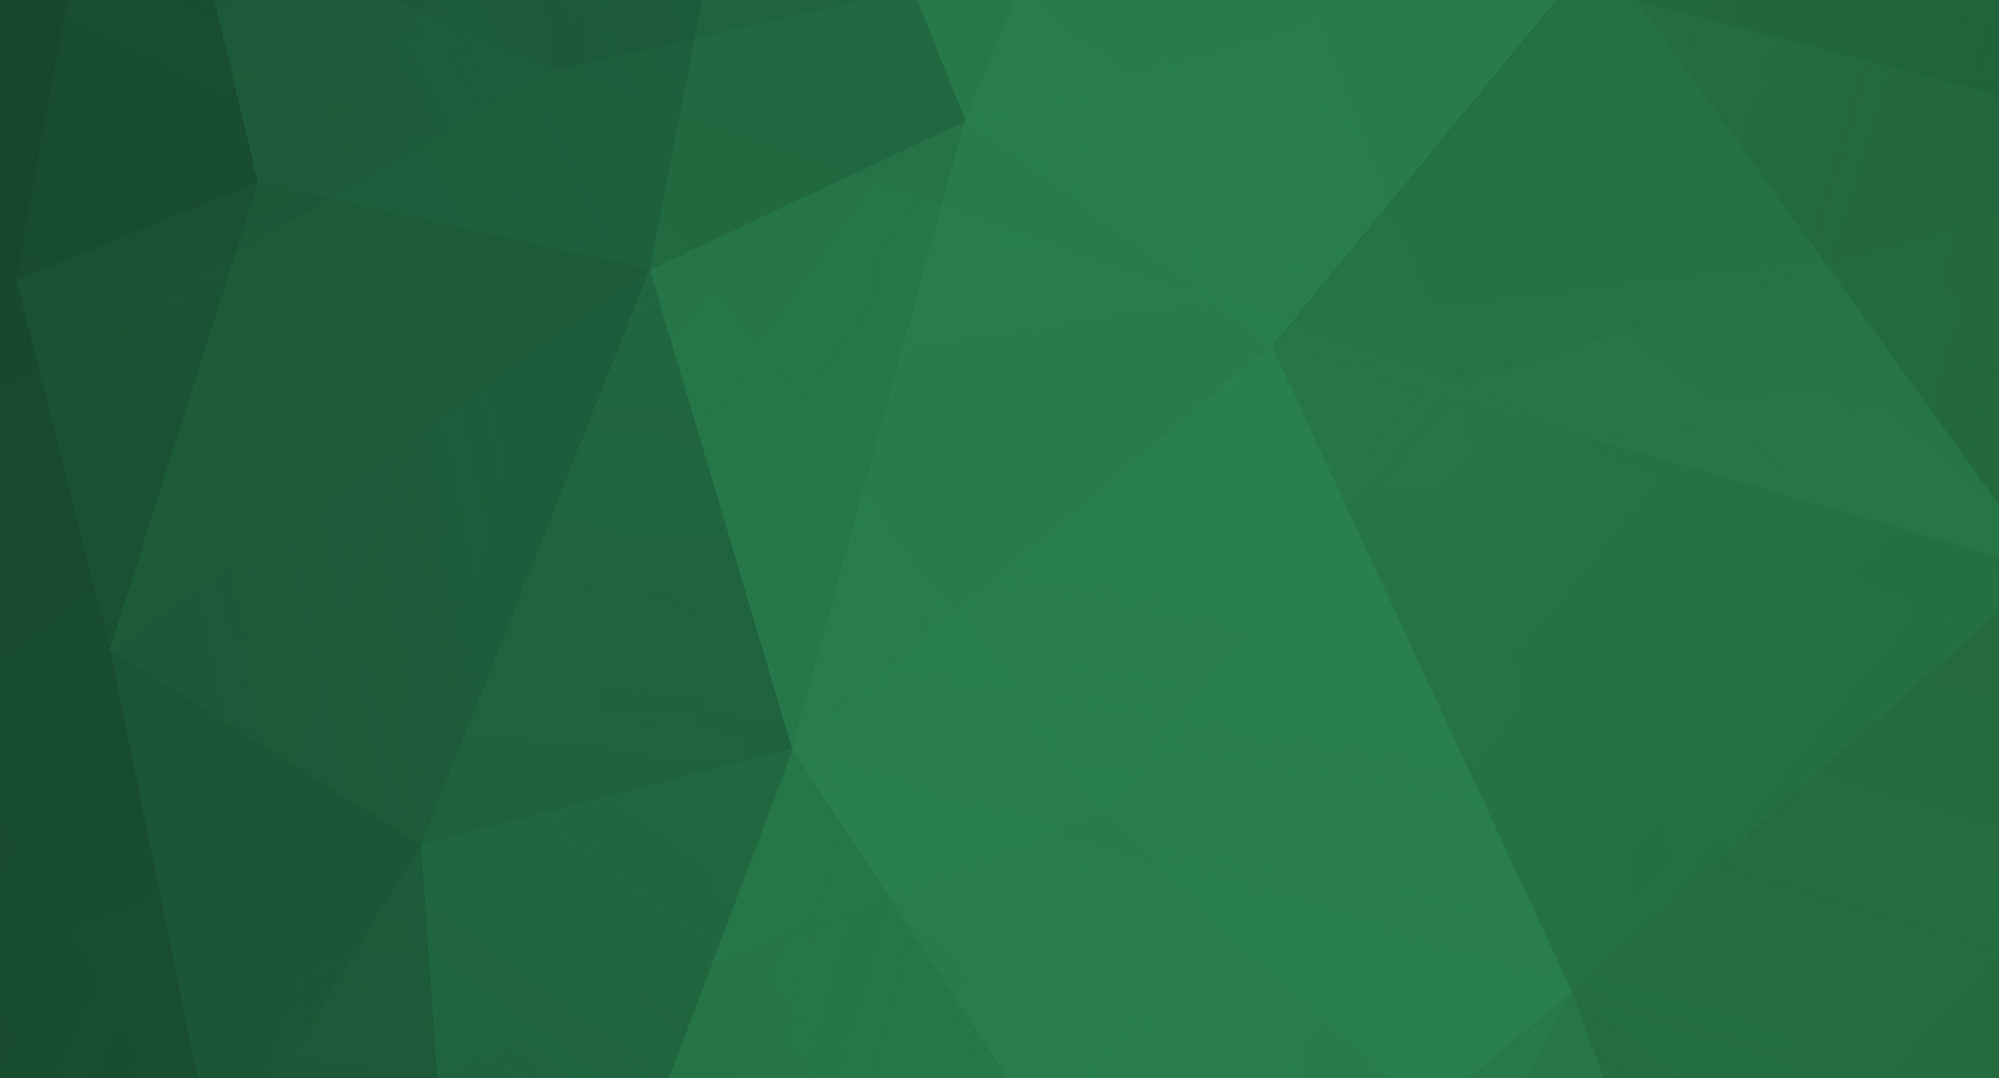 Green geometric background